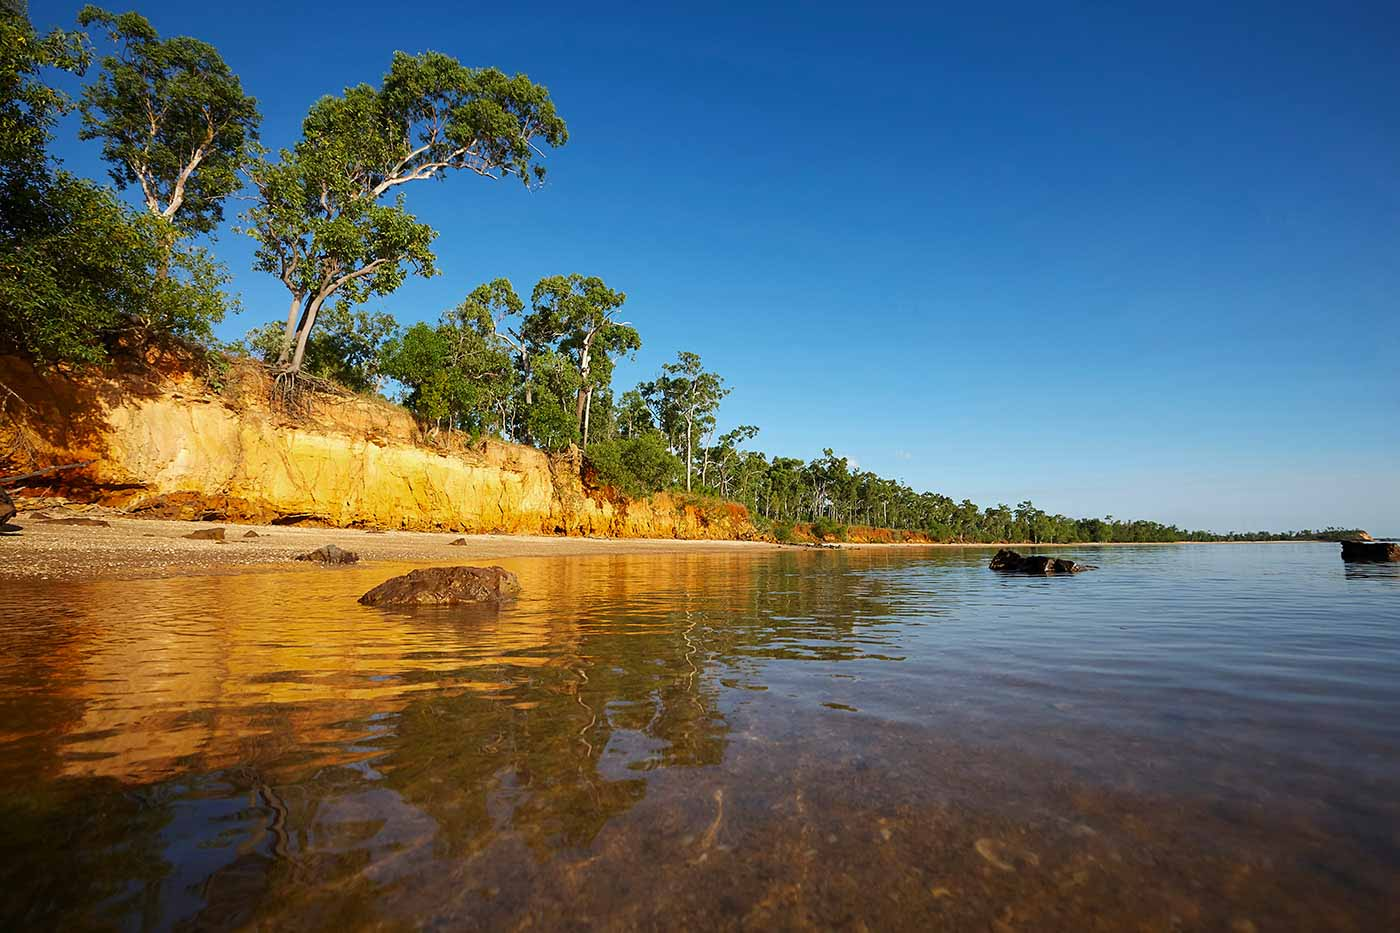 An inlet of water which captures the golden reflection of the nearby sandstone-like platform and surrounding trees.